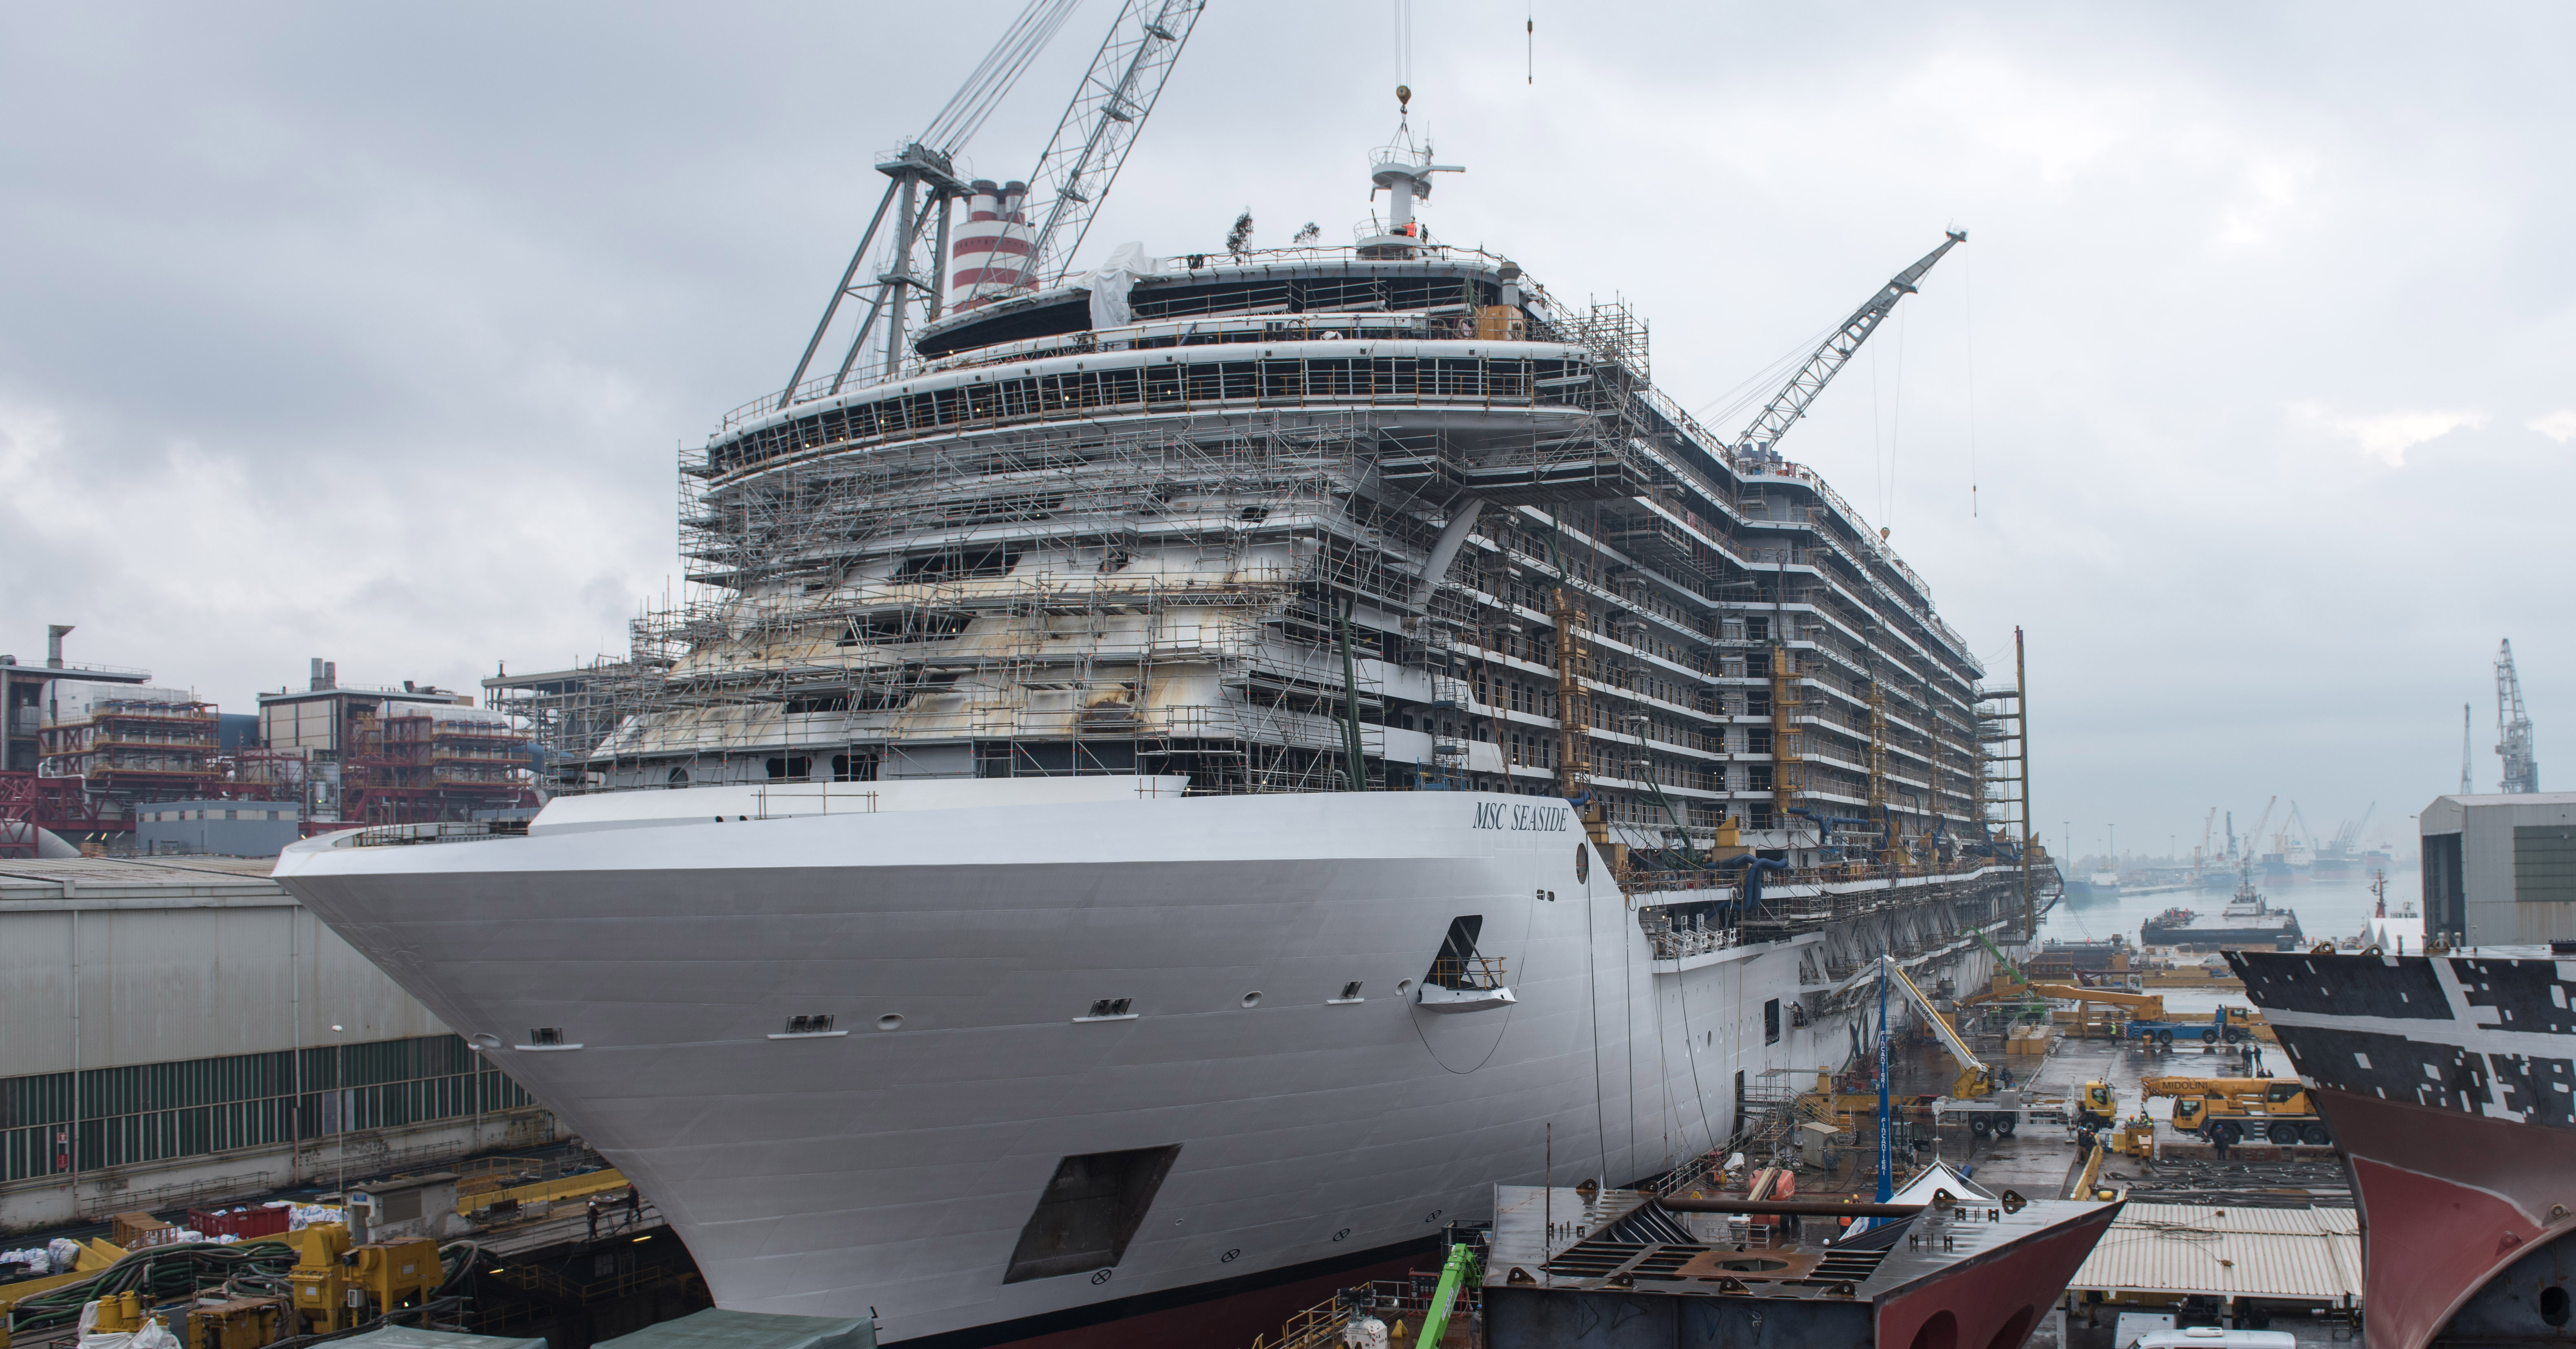 Msc Cruises Celebrates The Float Out Of Its Newest And Largest Cruise Ship Msc Cruises